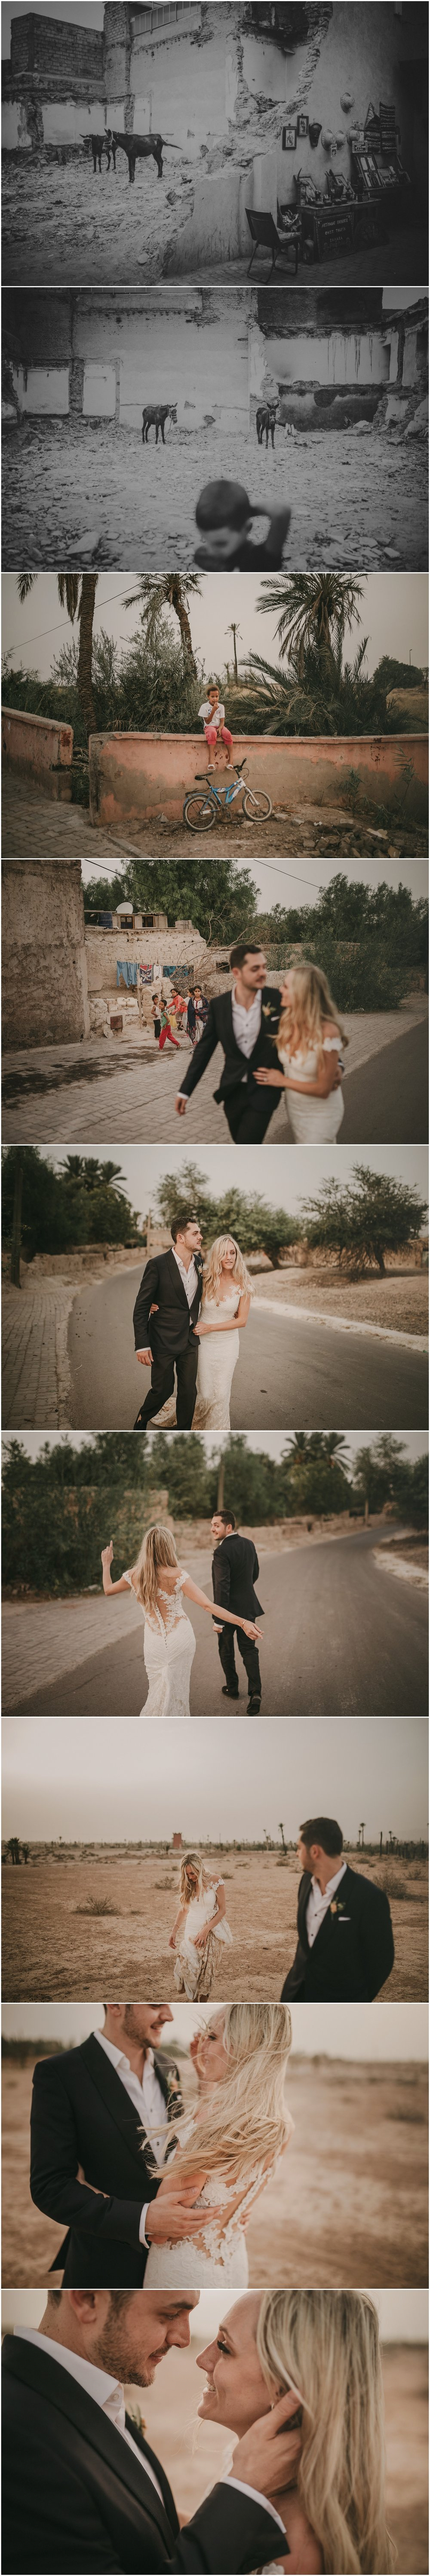 Marrakech wedding photography Pablo Laguia--094.jpg